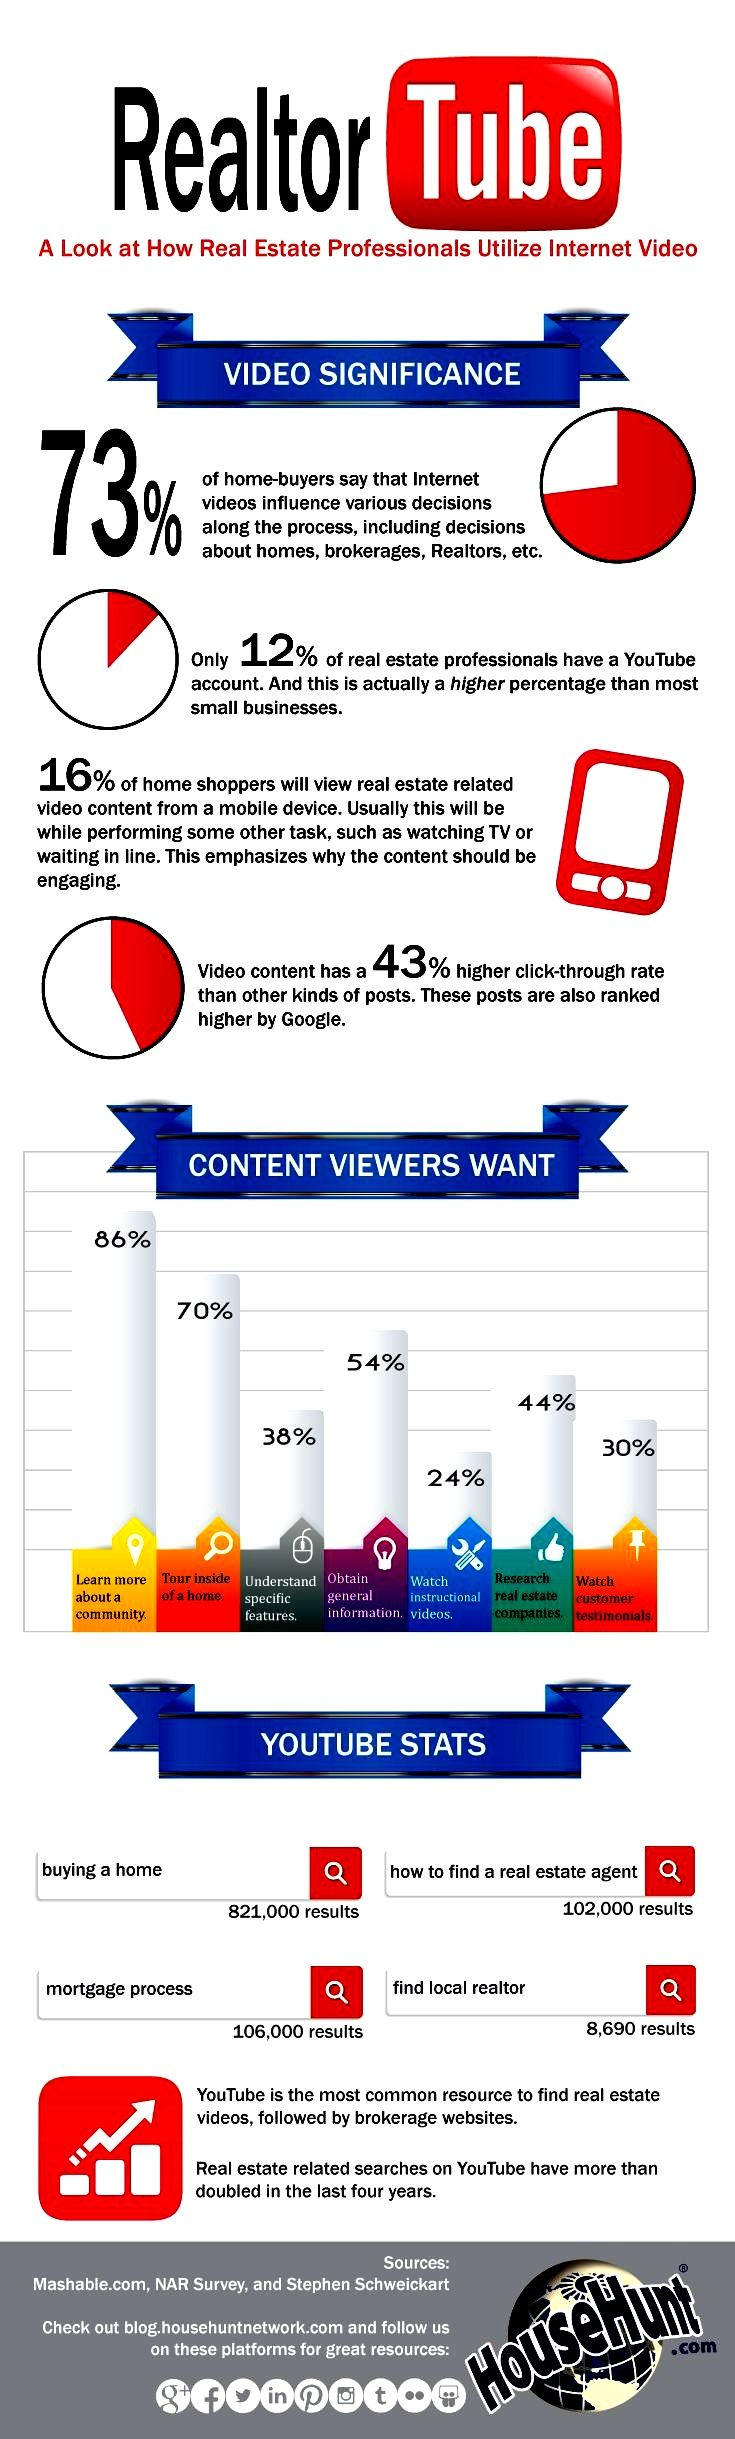 Realtor Use of YouTube for Videos.  #Realtor  #YouTube  #Video  #SocialMedia  #RealEstate